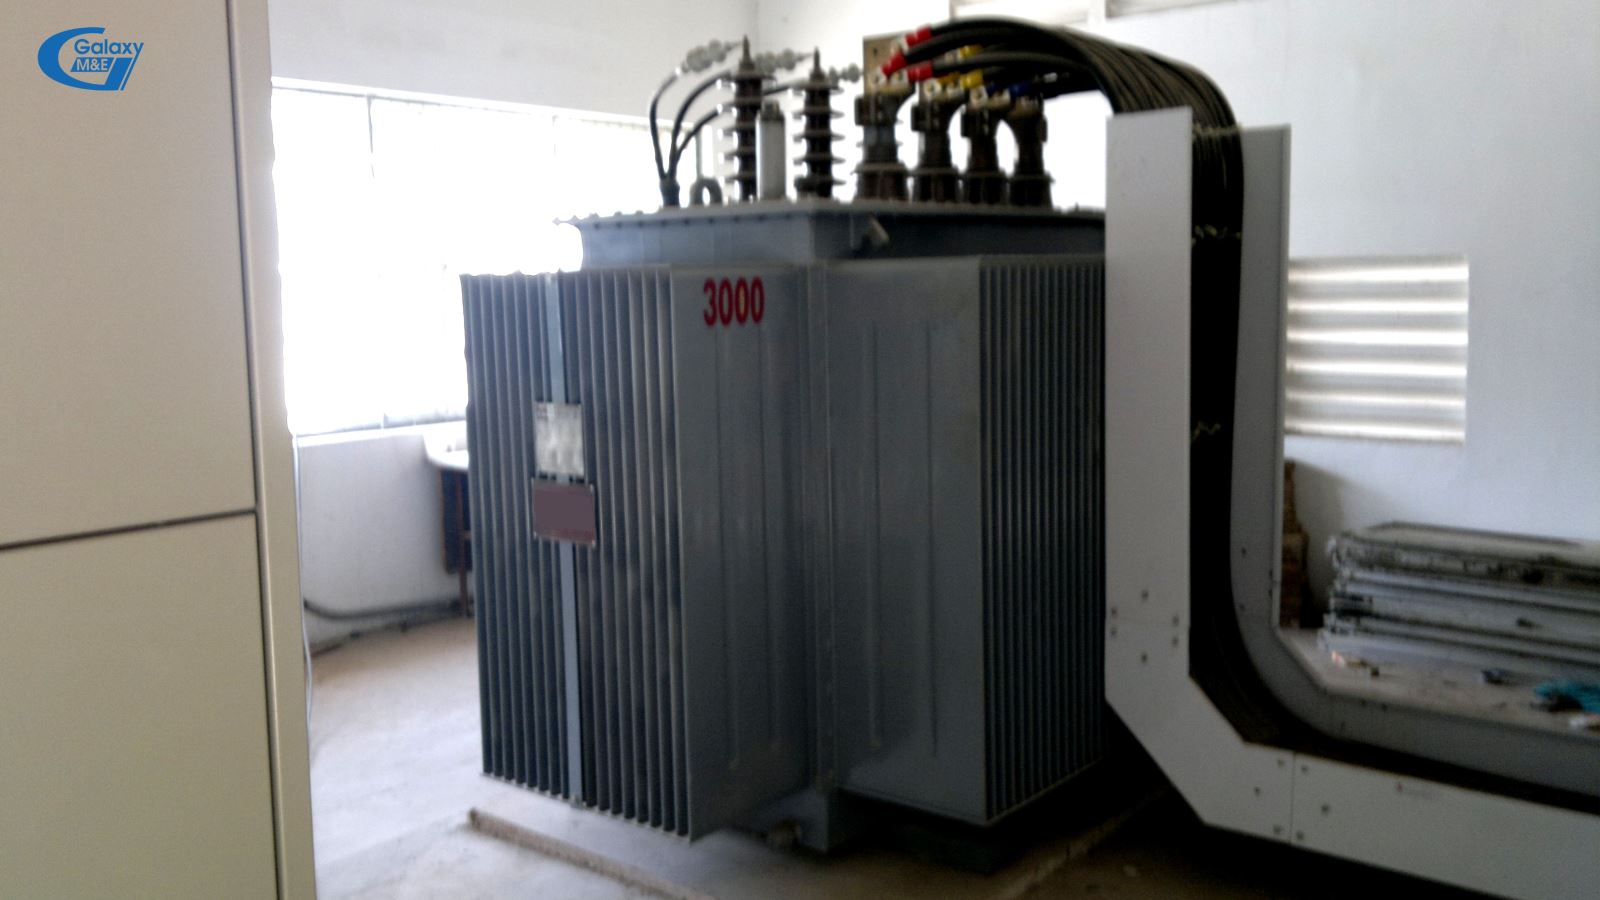 The air outlet of transformer room must have a system to prevent organisms outside the living environment from entering.